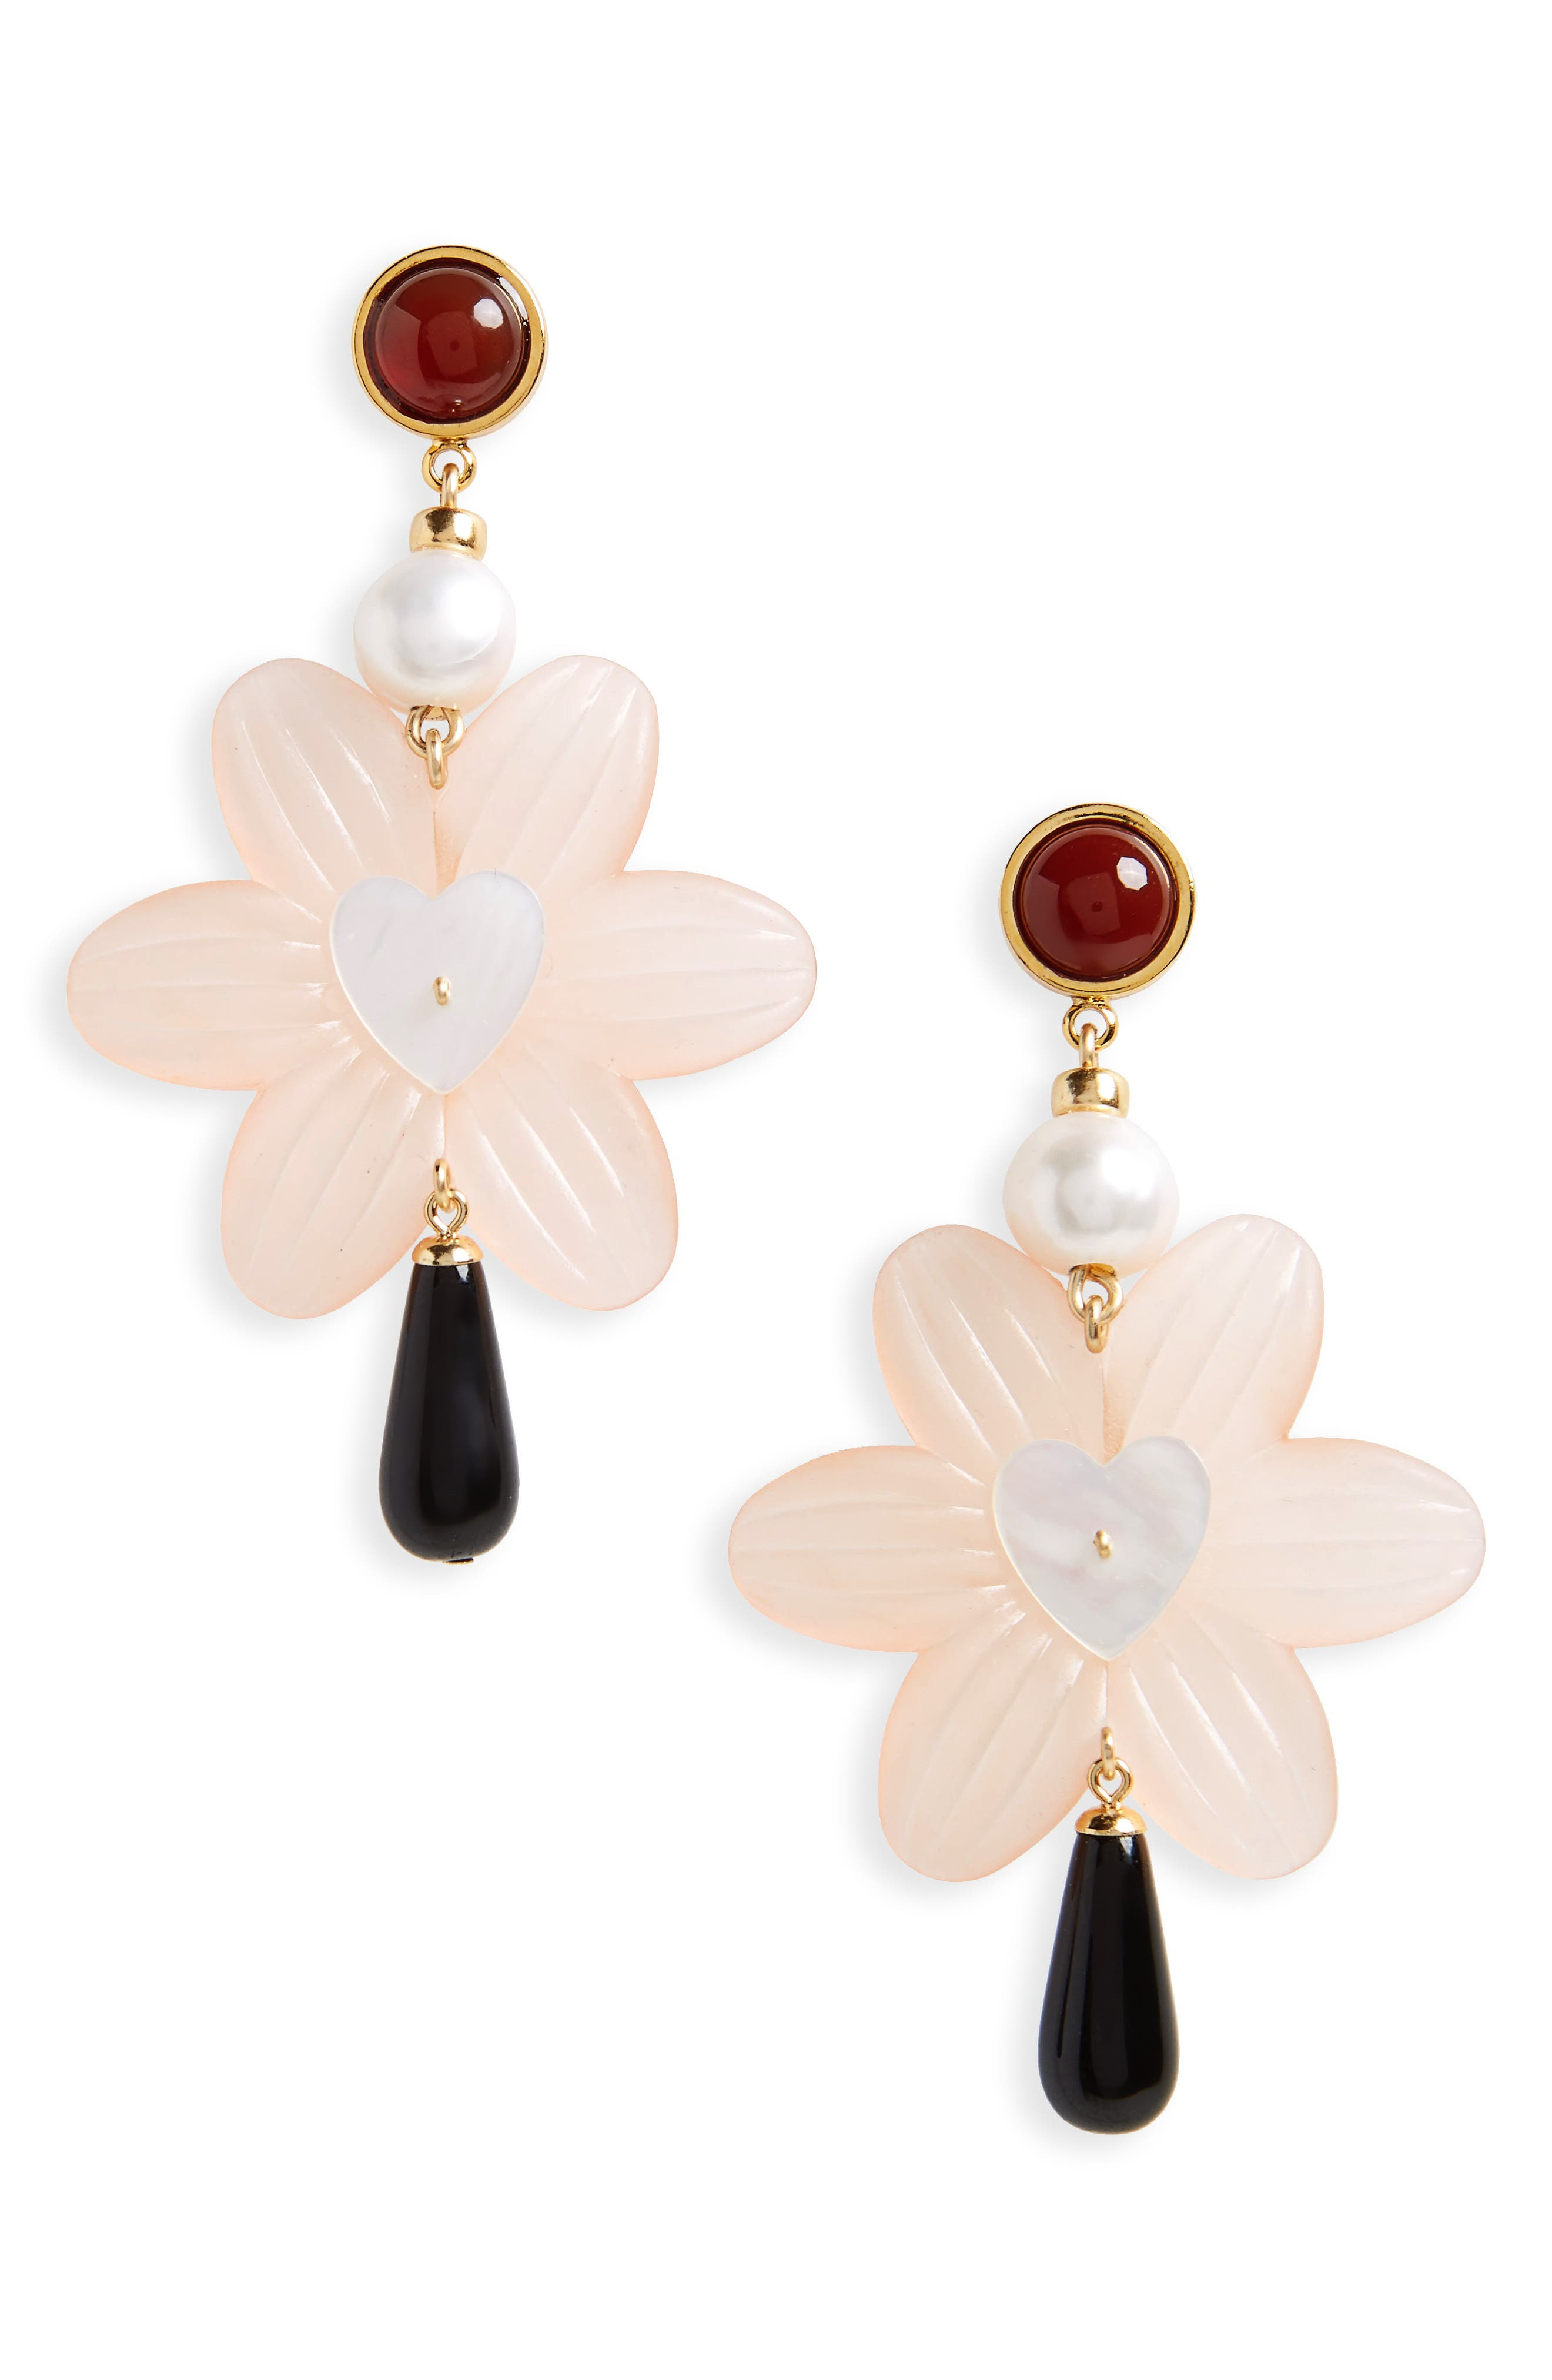 Sal Heart Drop Earrings with Freshwater Pearl,                             Main thumbnail 1, color,                             710